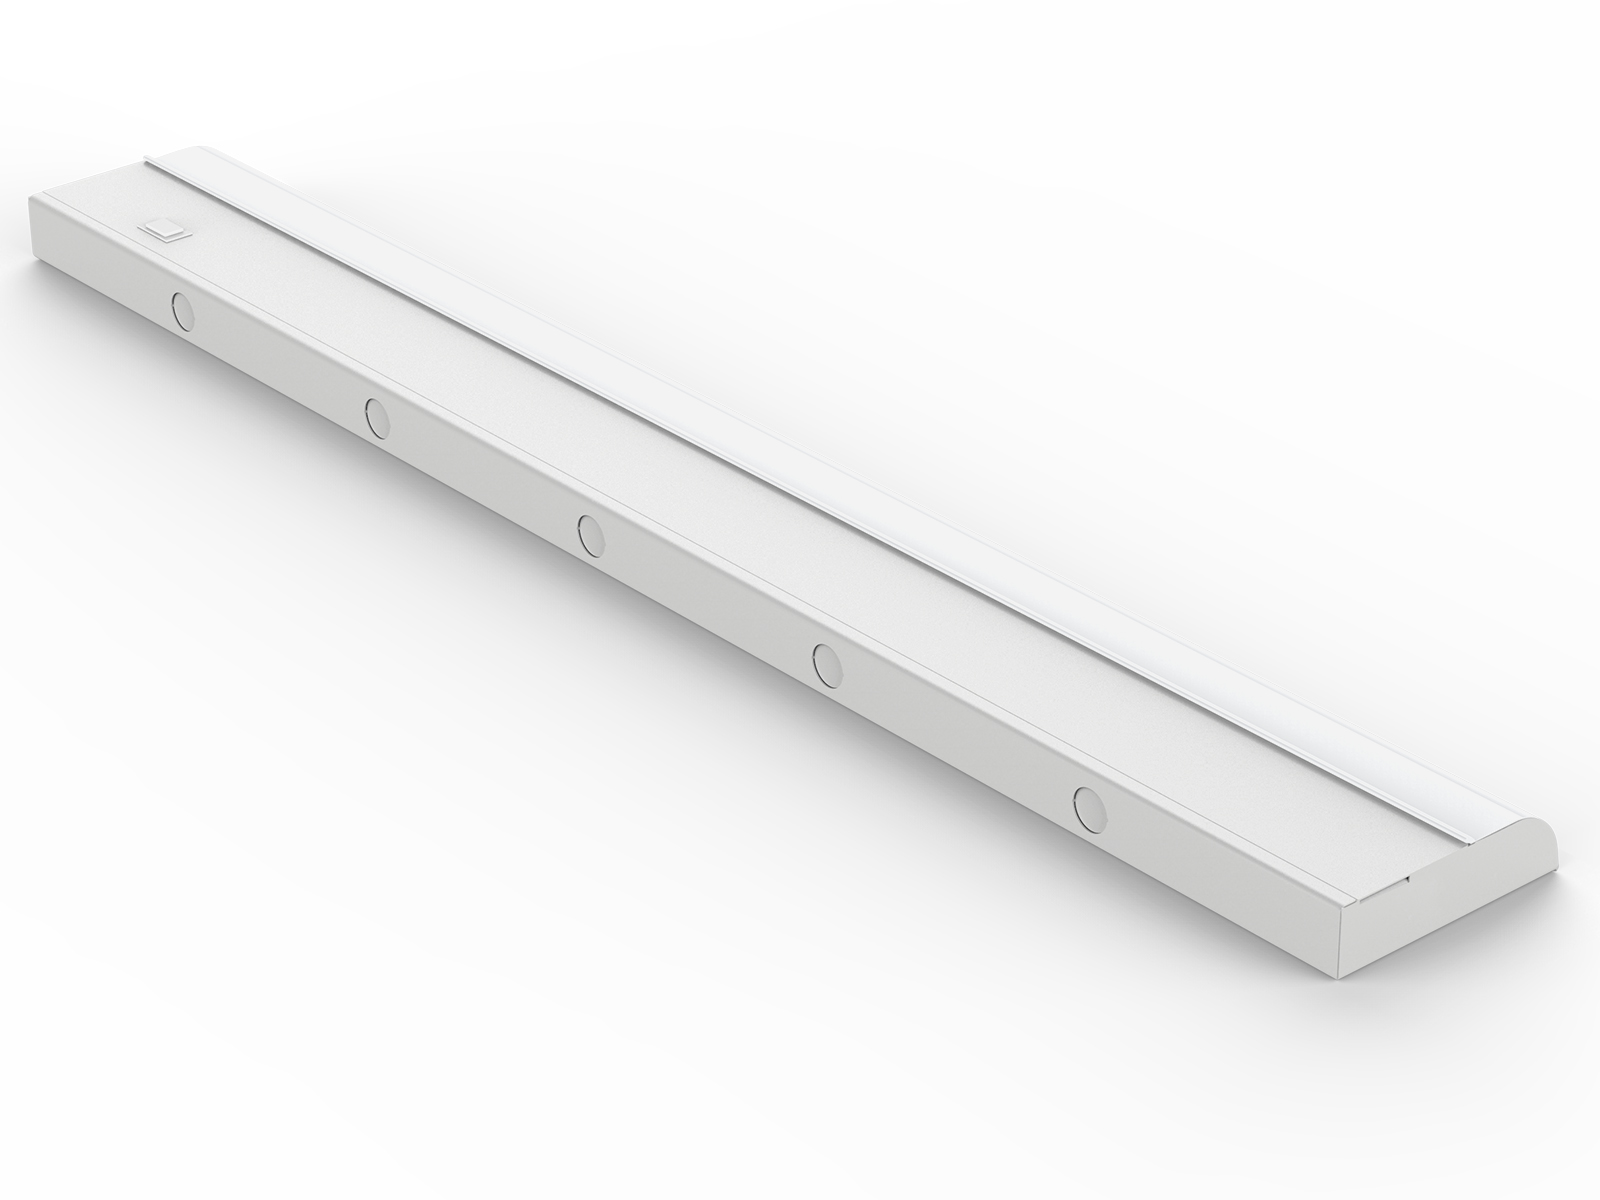 High Quality LED Batten Light 3